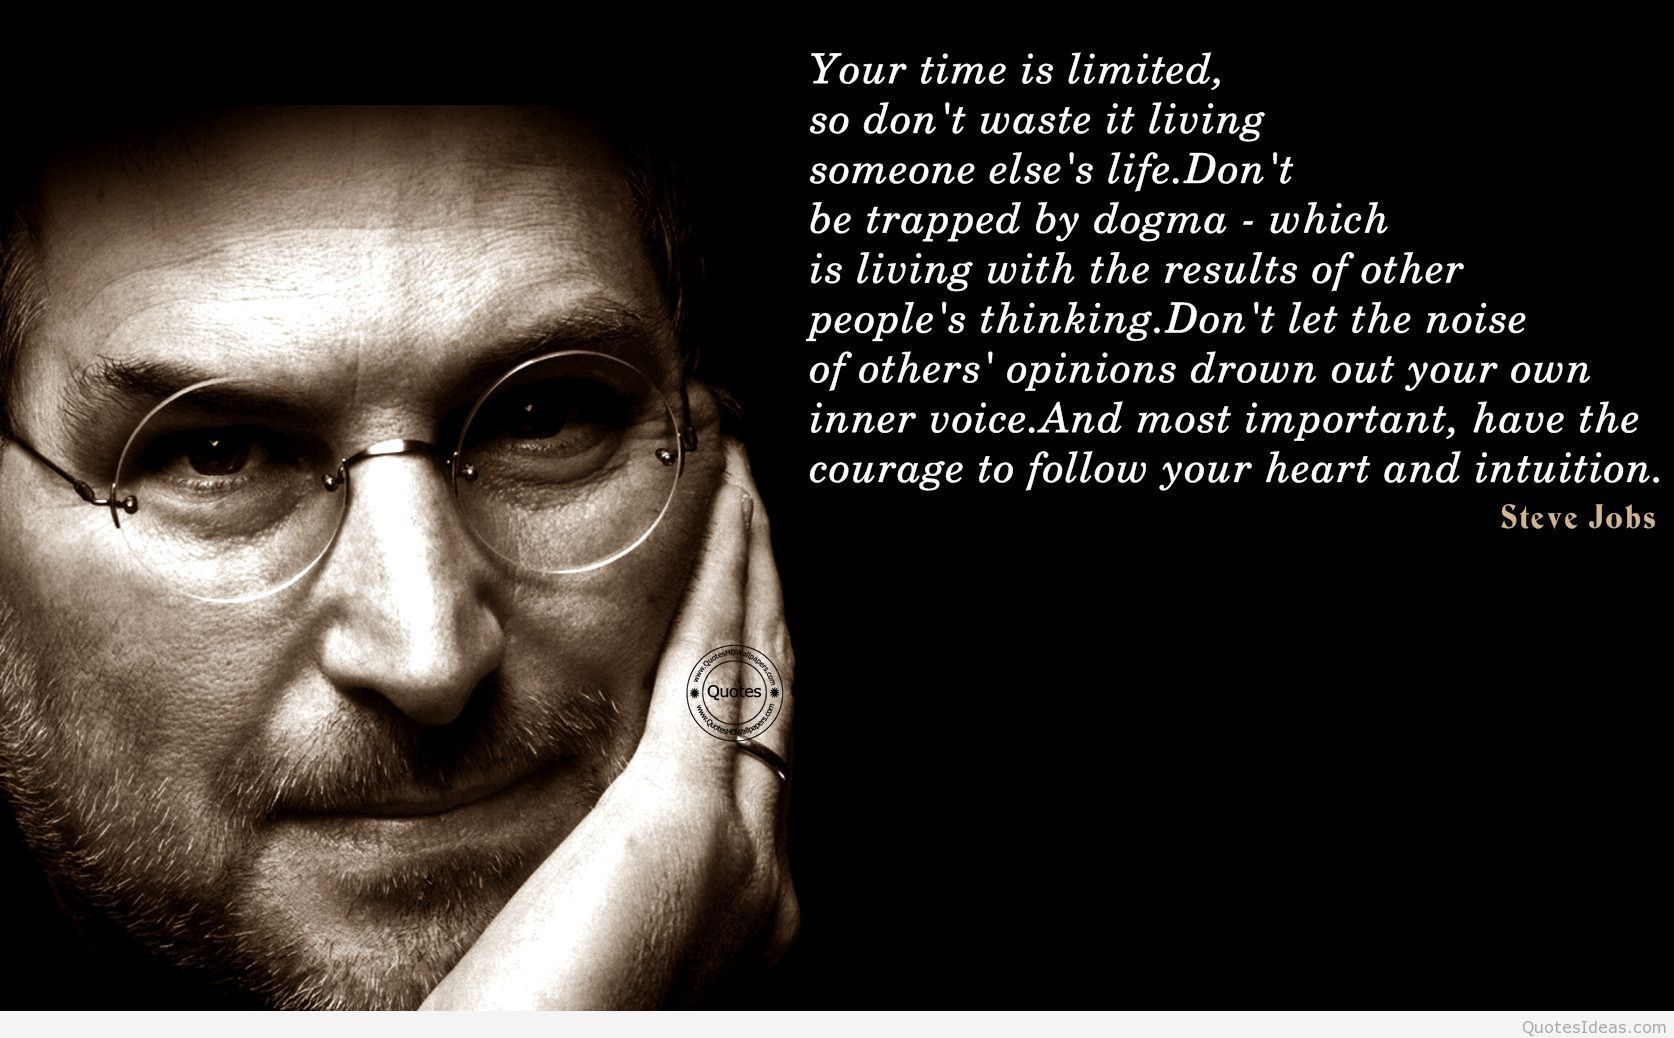 Steve Jobs Quotes On Life Image Result For Courage Quotes  Inspiration  Pinterest